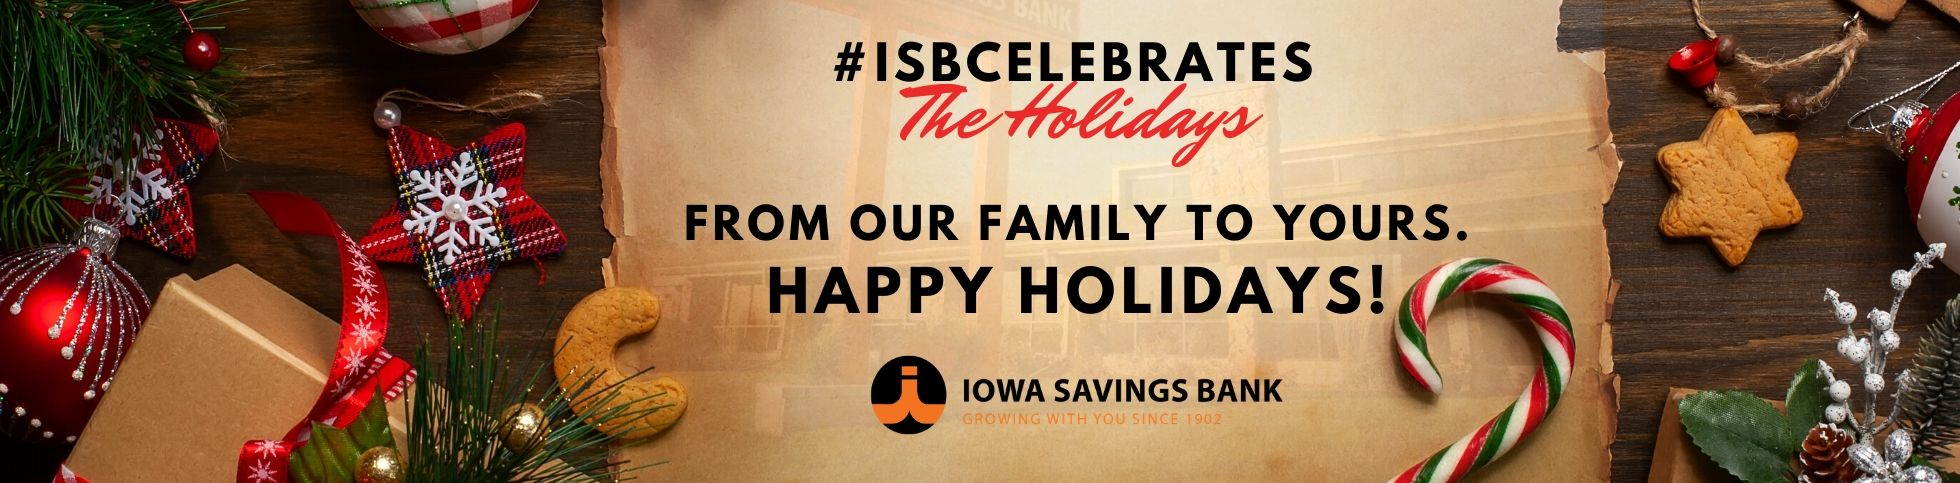 Happy Holidays from Iowa Savings Bank